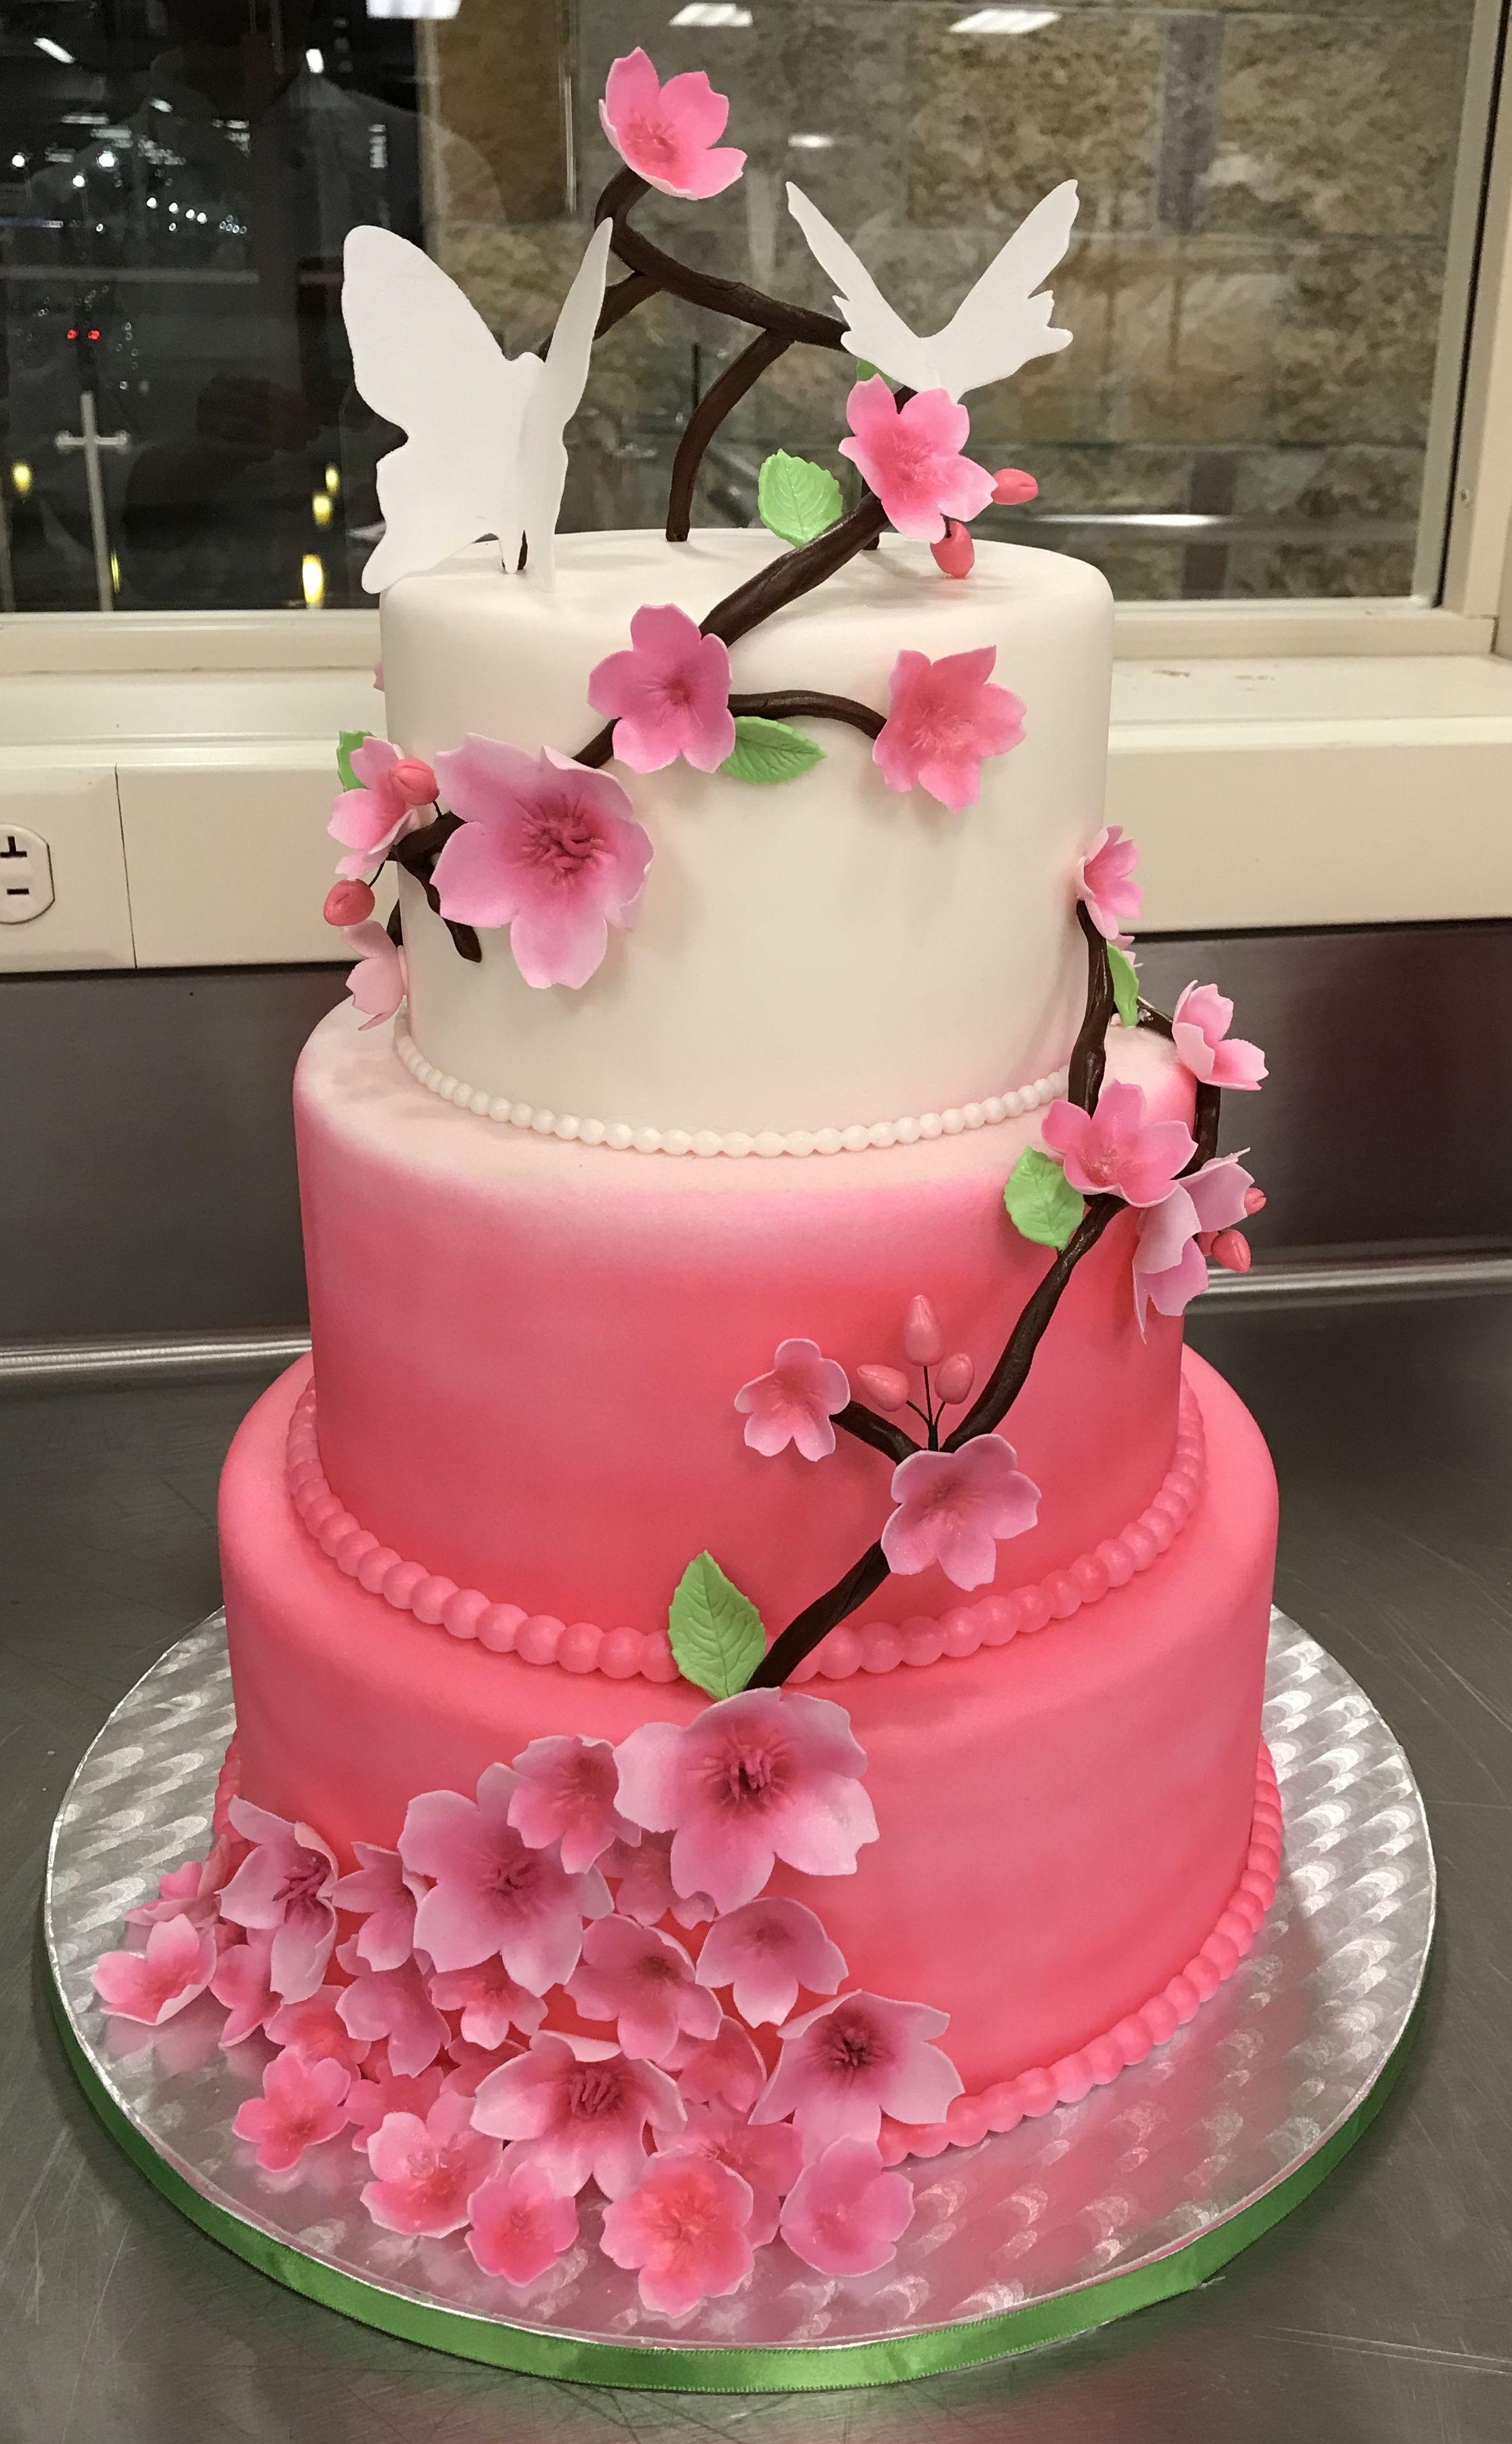 Wedding cake with cherry blossoms and butterfly toppers ...